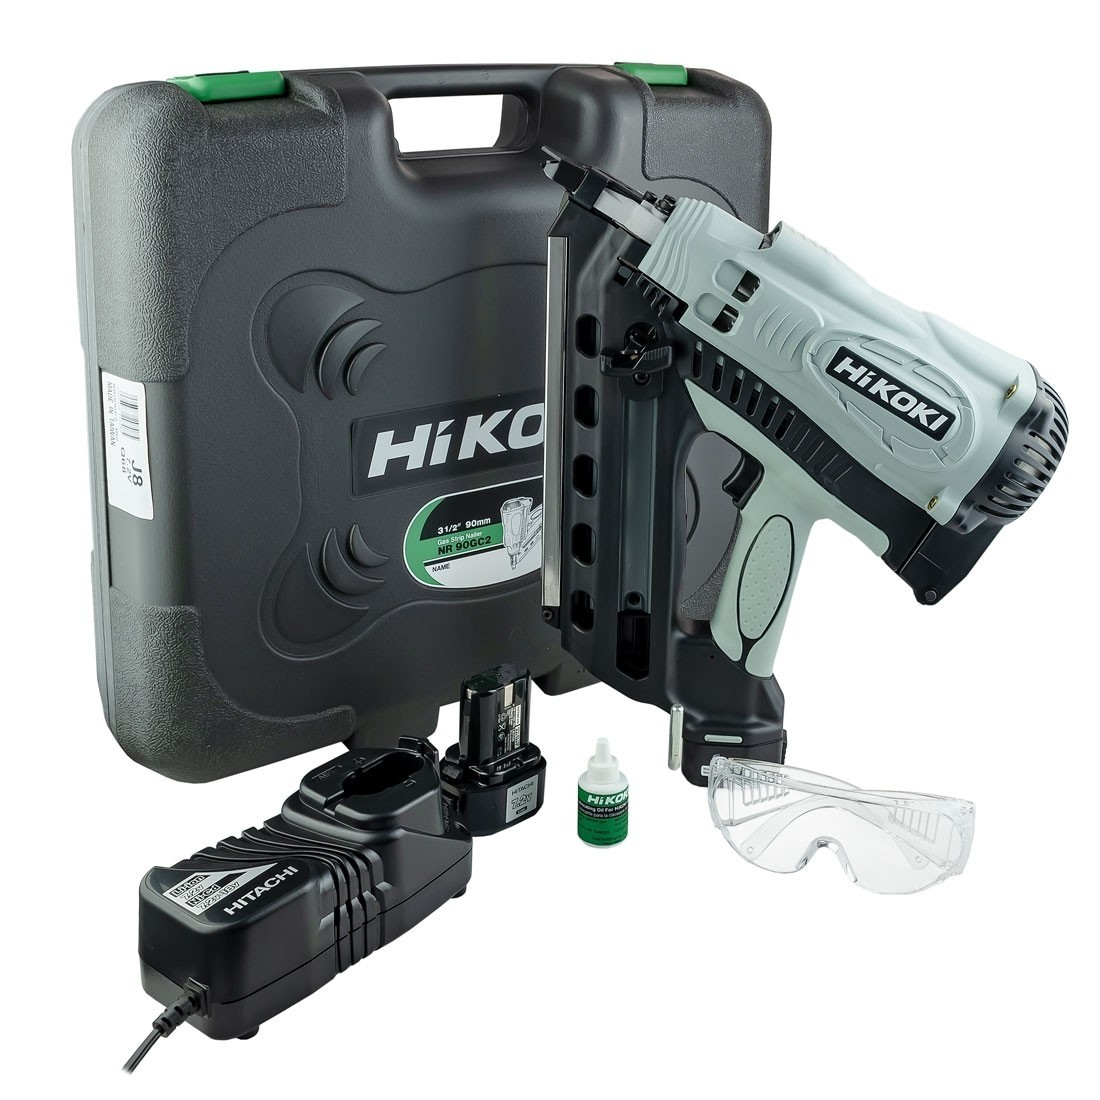 Hikoki NR90GC2/j8 1st Fix Gas Nailer, 2 x 1.5ah Batteries, Charger And Case